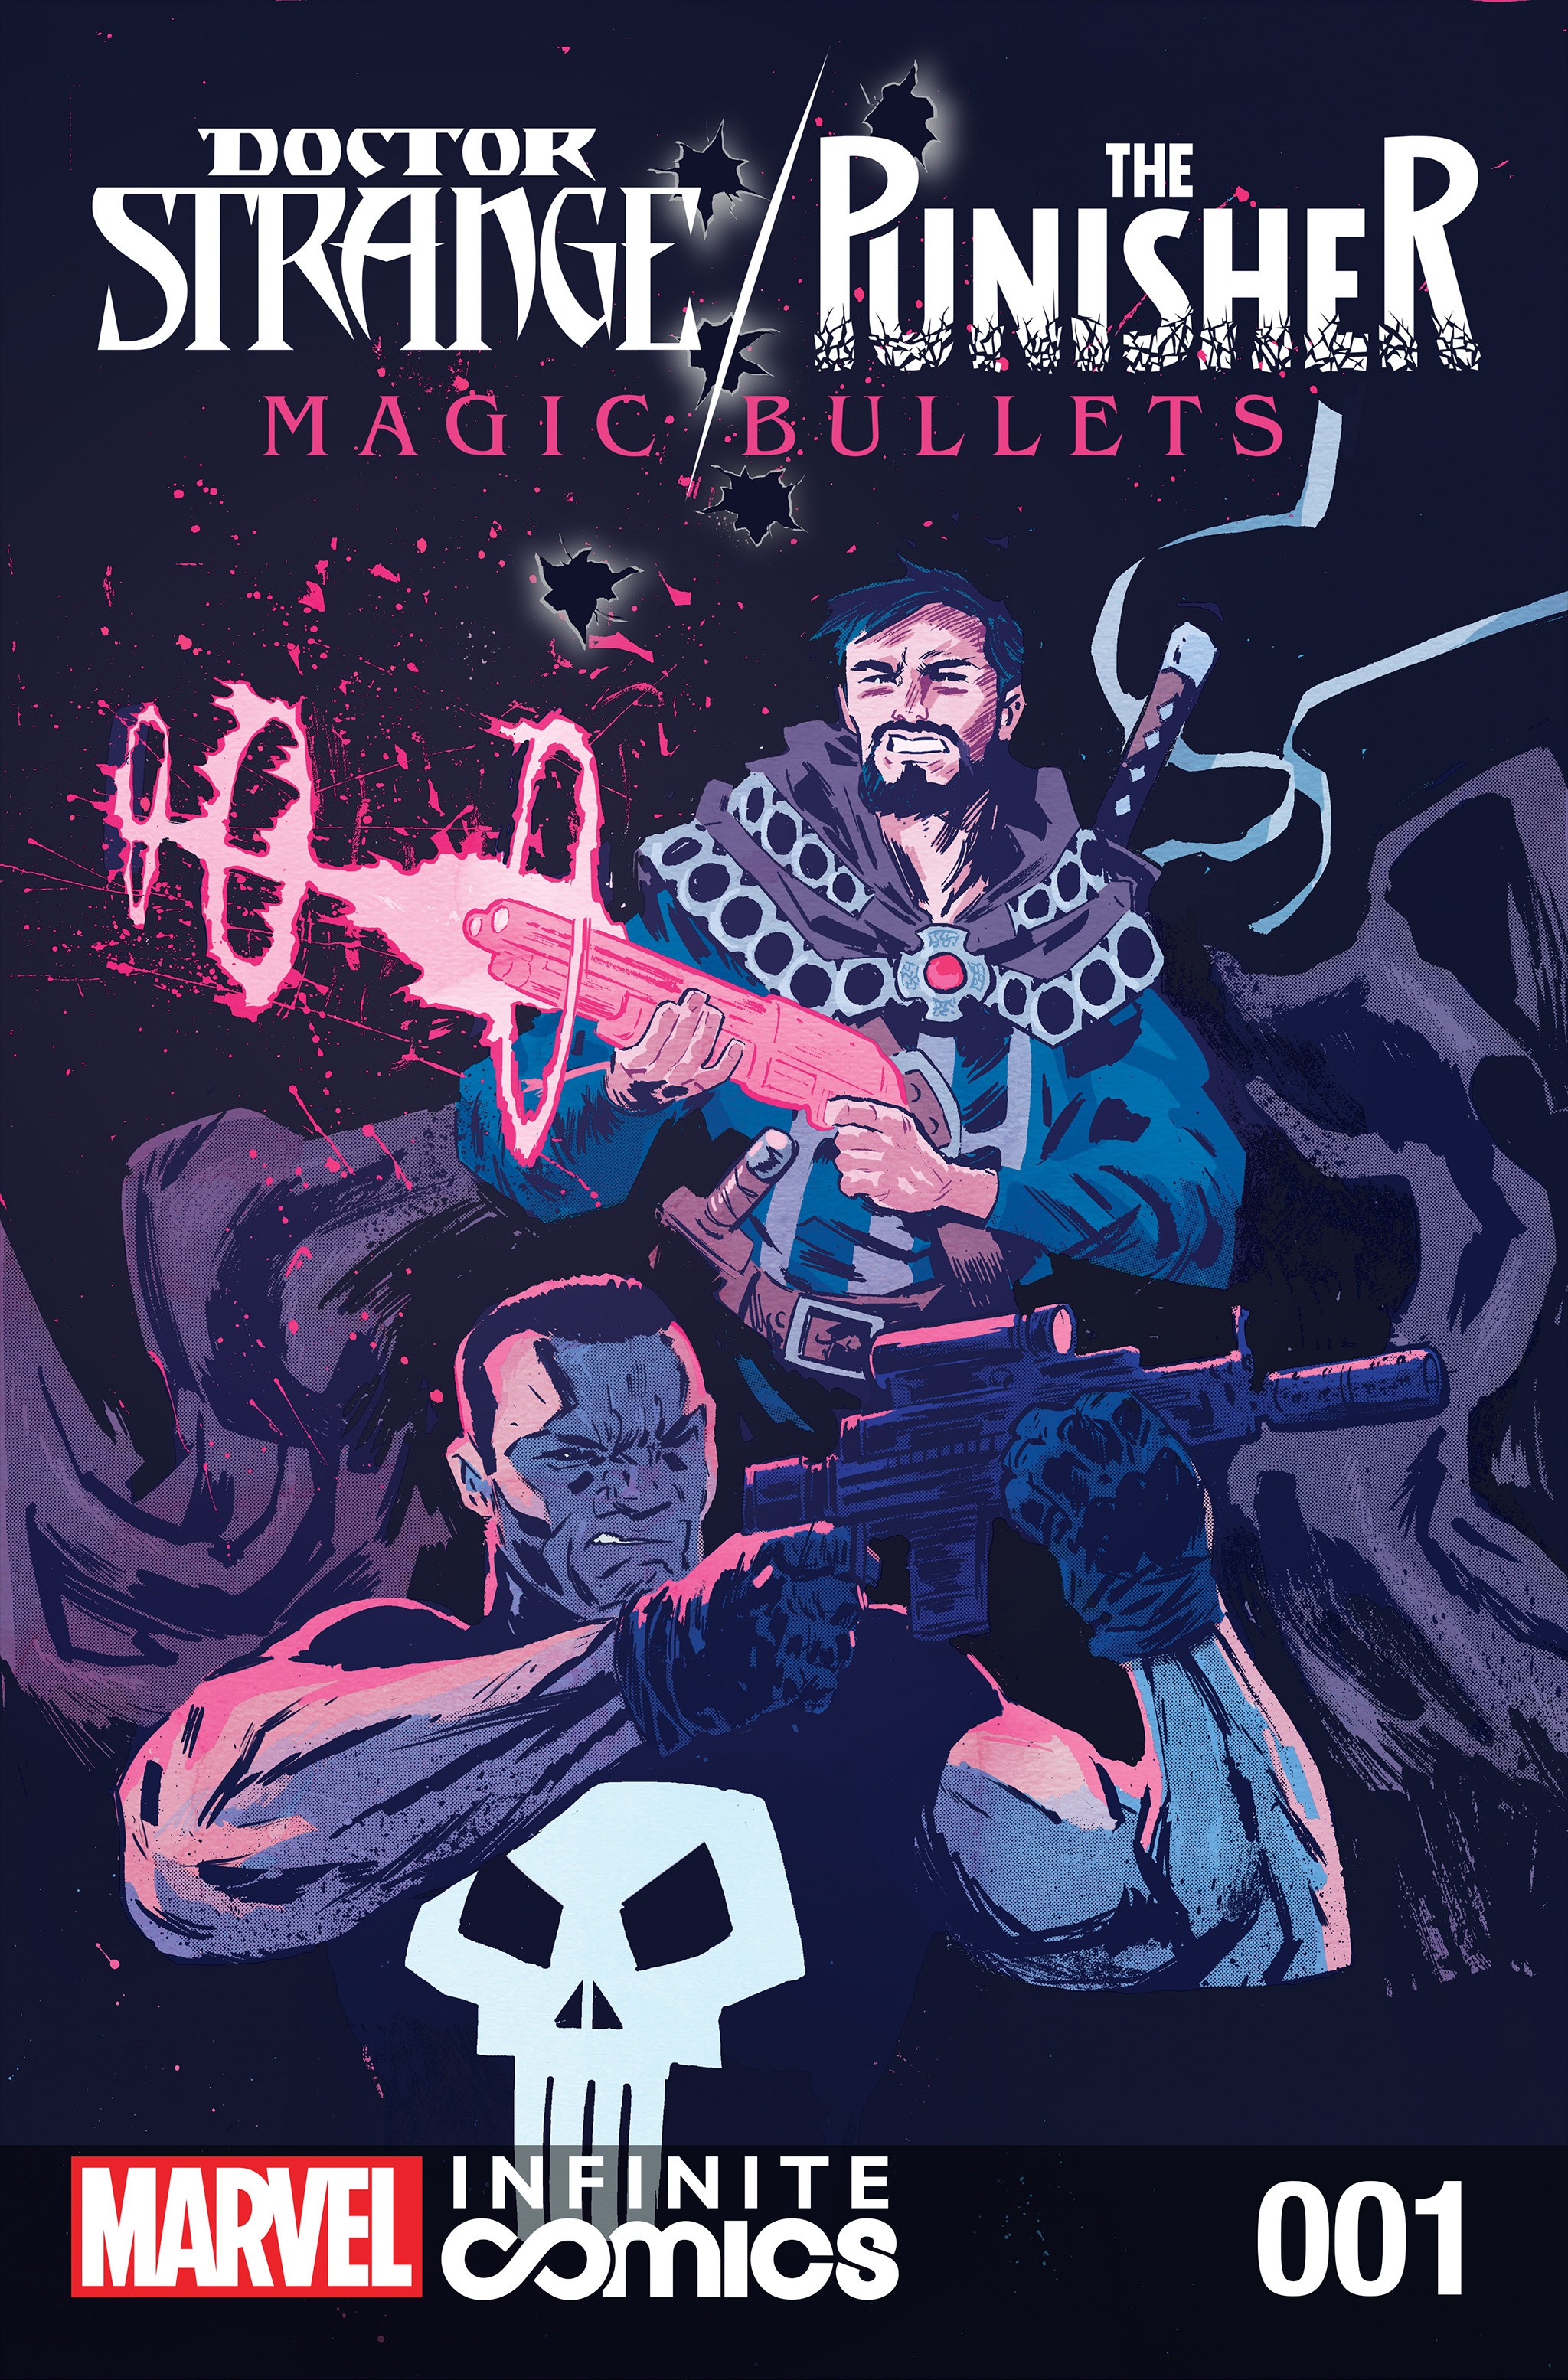 Doctor Strange / Punisher: Magic Bullets Infinite Comic Vol 1 1